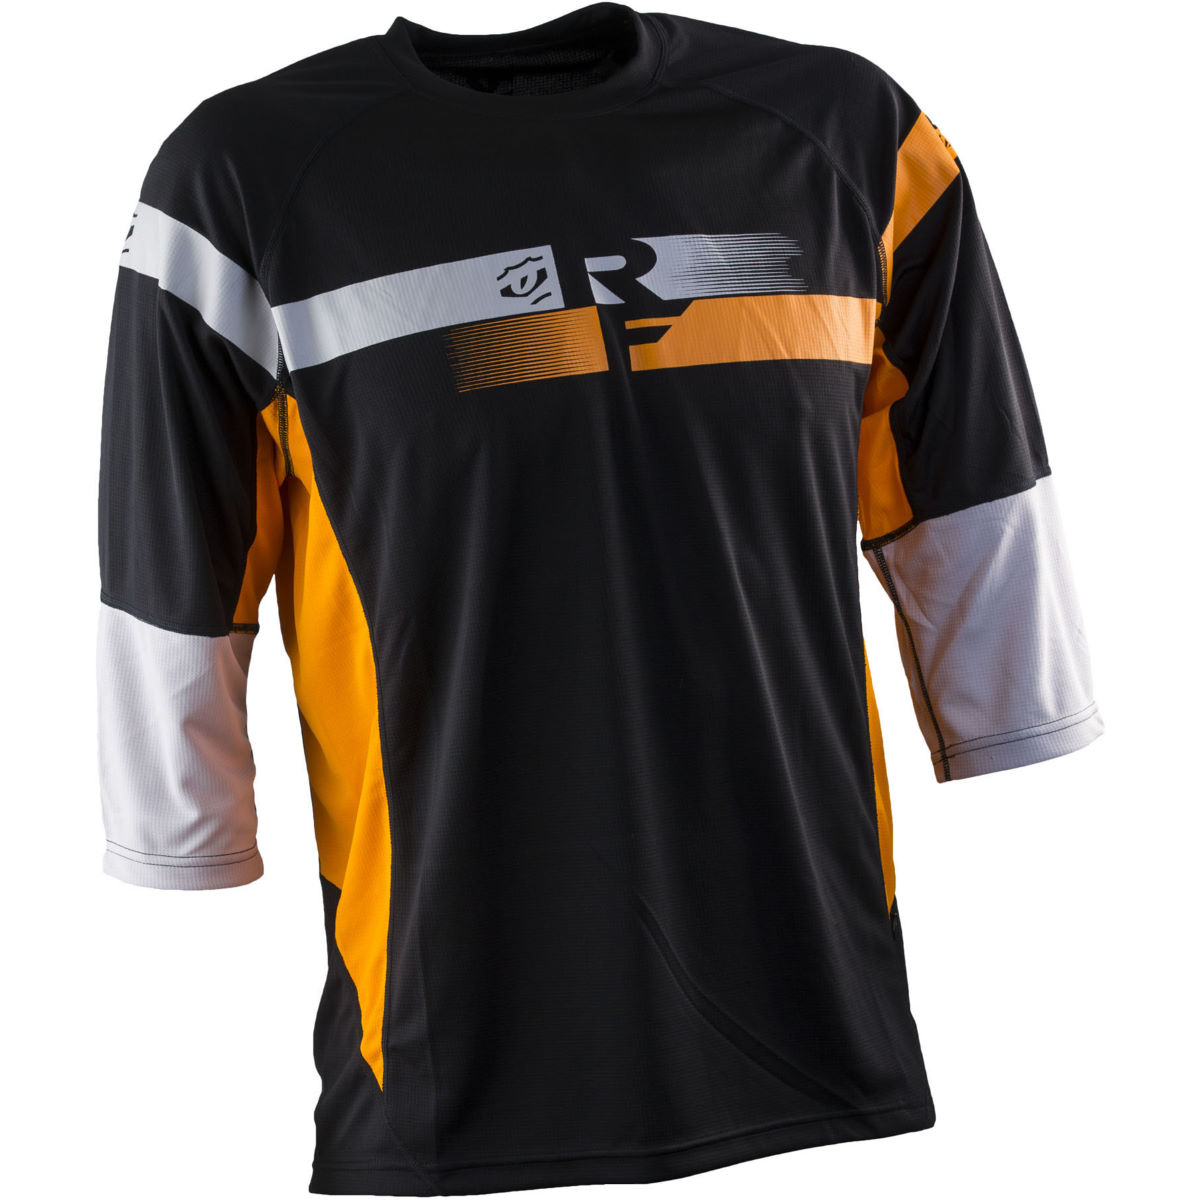 Maillot Race Face Indy (manches 3/4, 2015) - M Orange